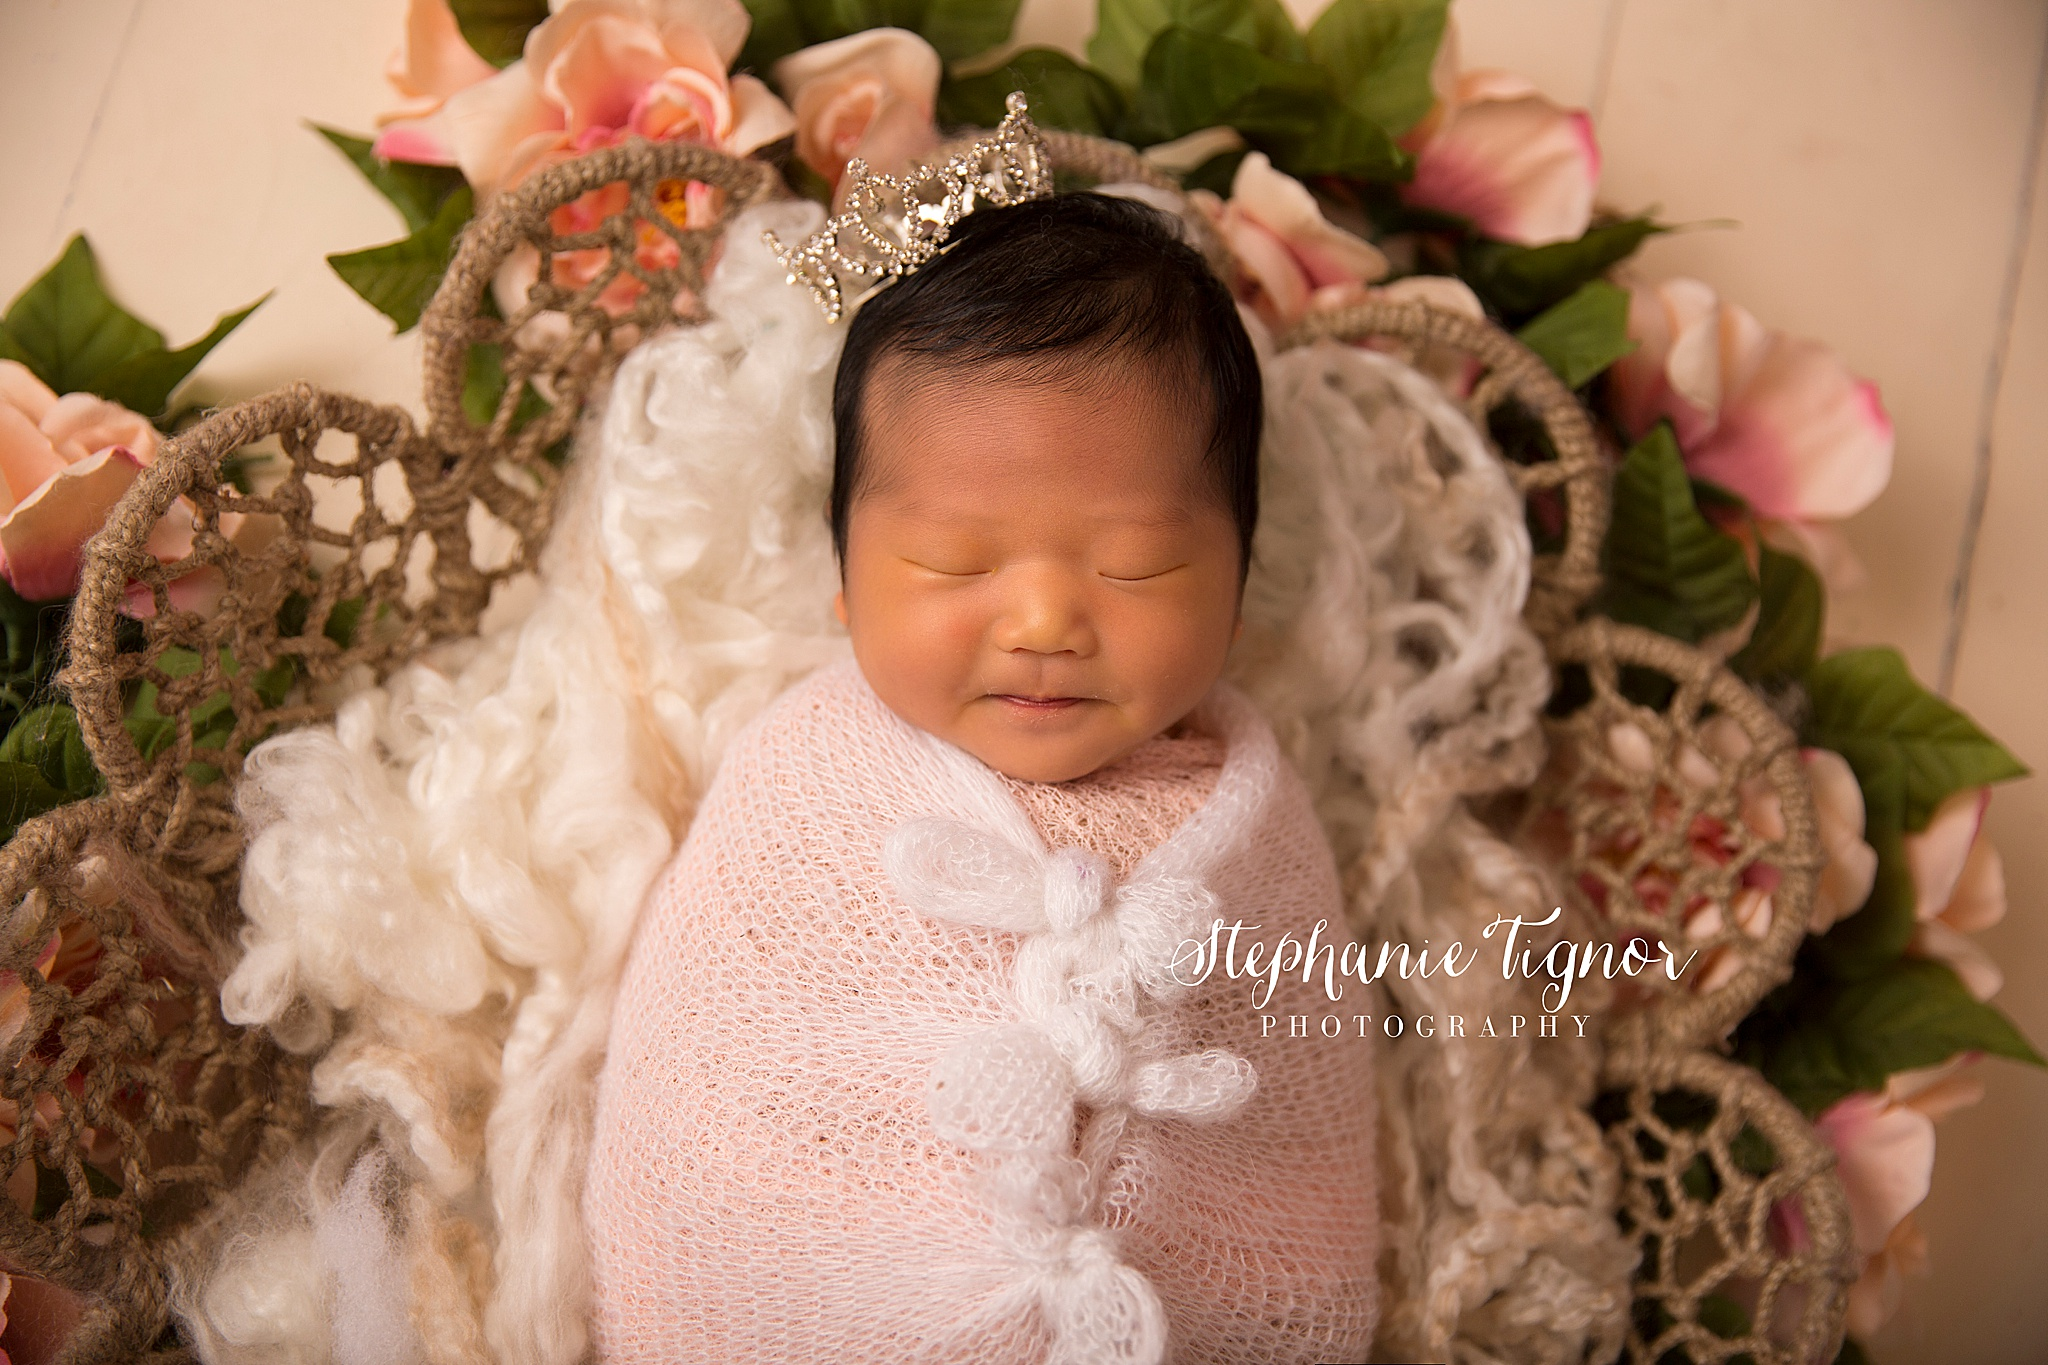 Stephanie Tignor Photography_Newborn Photographer_0071.jpg